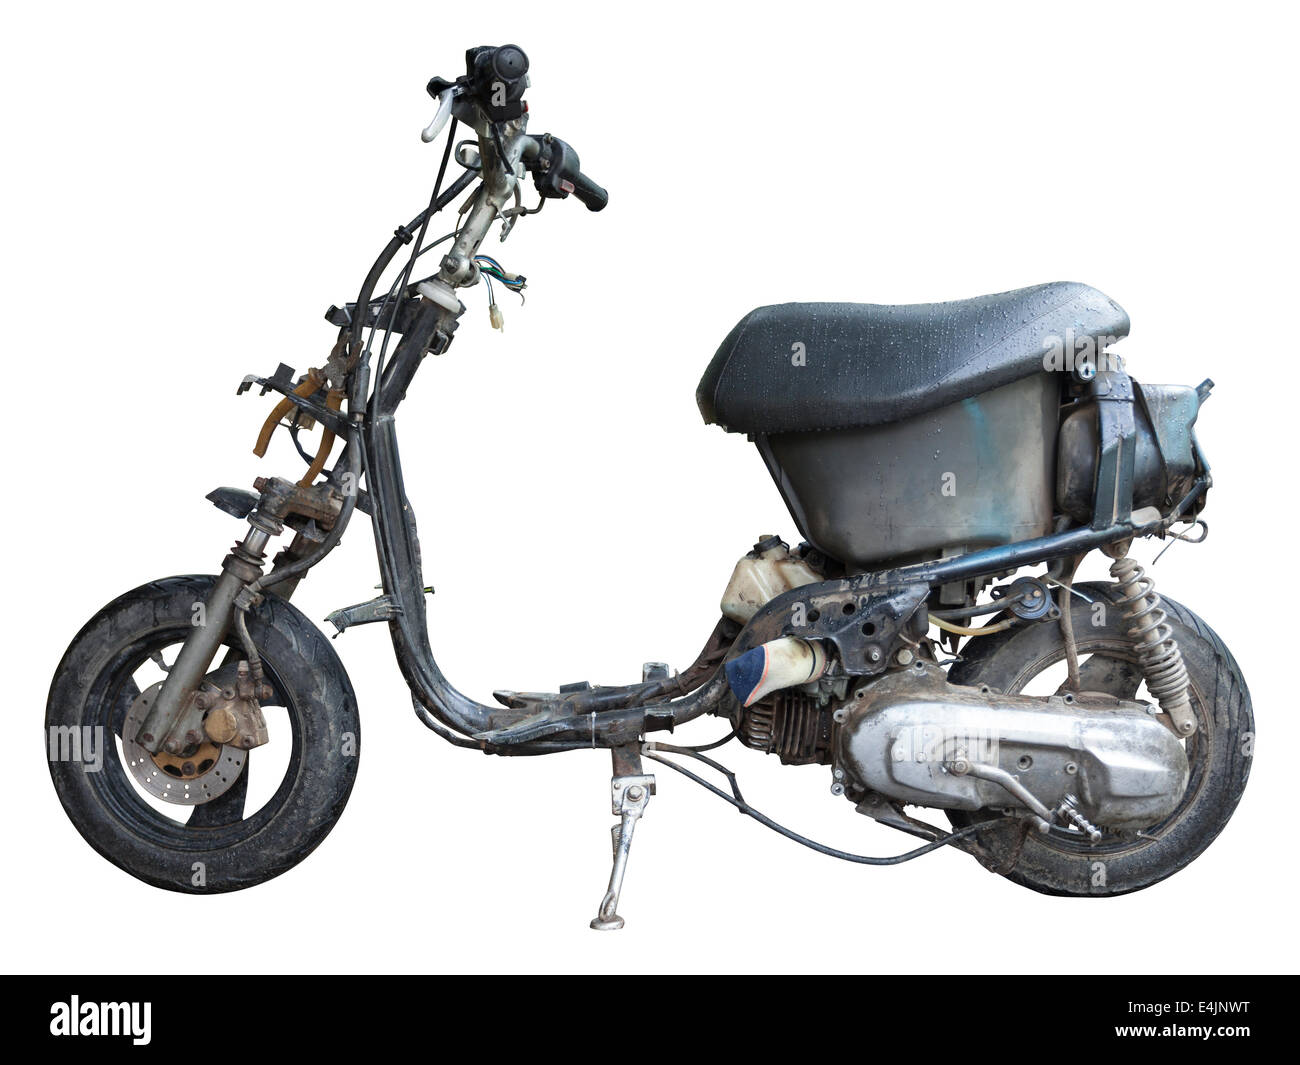 old disassembled scooter ready for repair - stock image